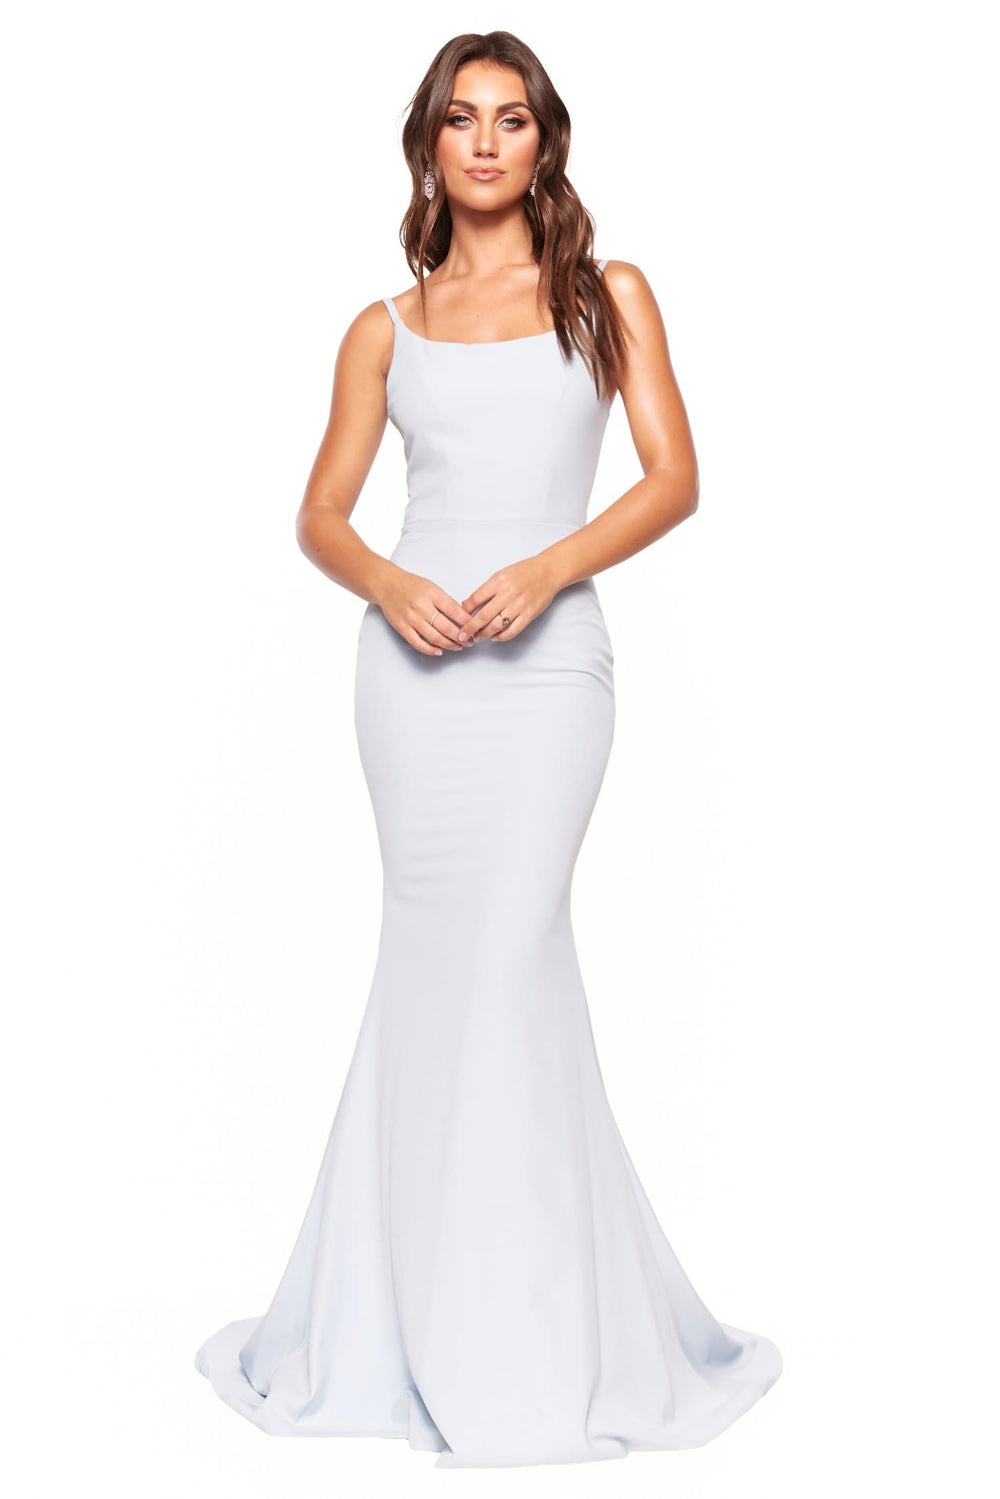 A&N Luxe Imani - Sky Blue Mermaid Ponti Gown with Thin Straps